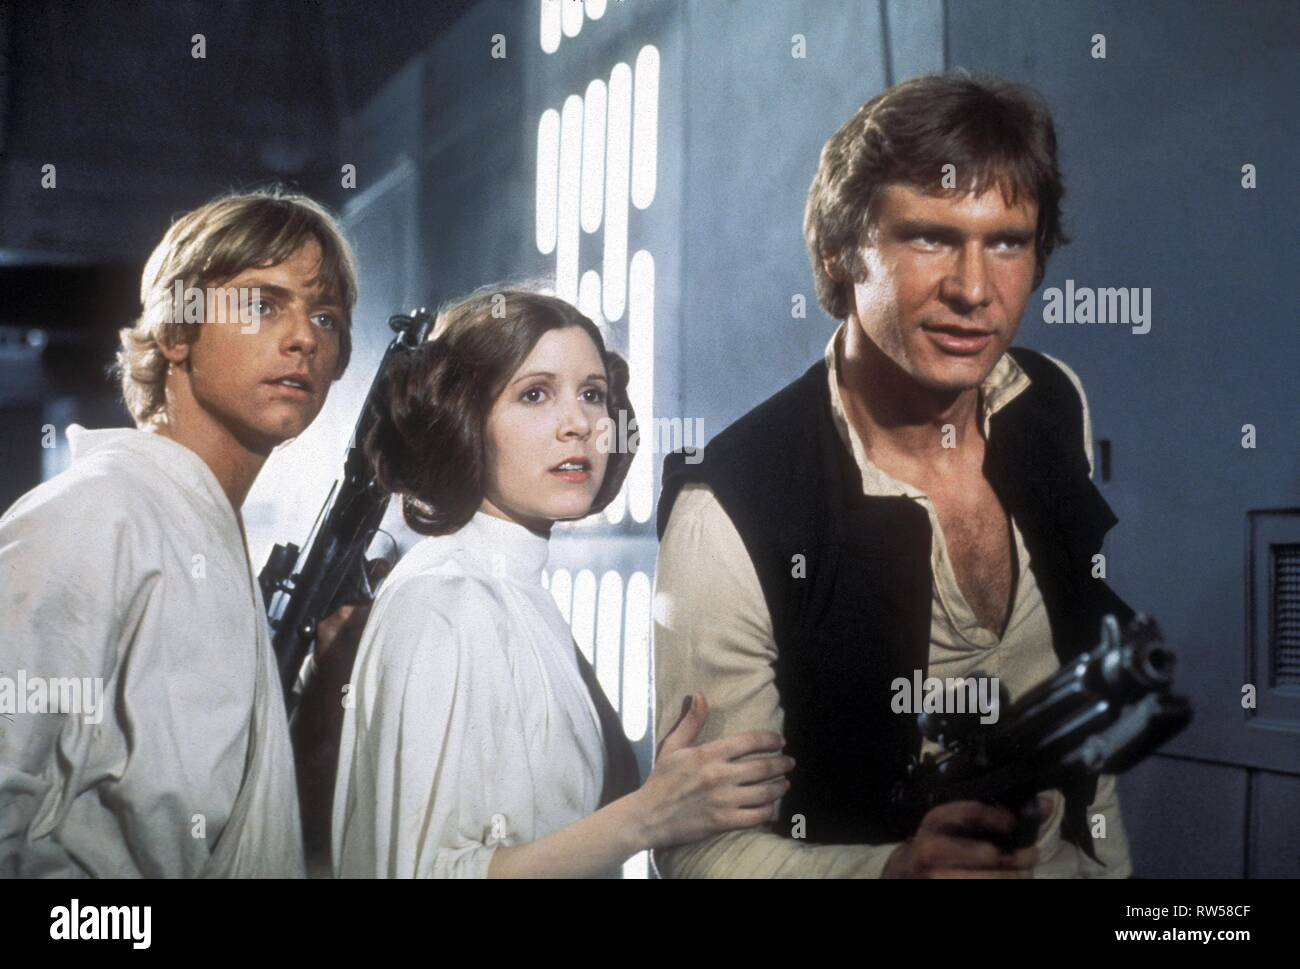 HAMILL,FISHER,FORD, STAR WARS: EPISODE IV - A NEW HOPE, 1977 - Stock Image